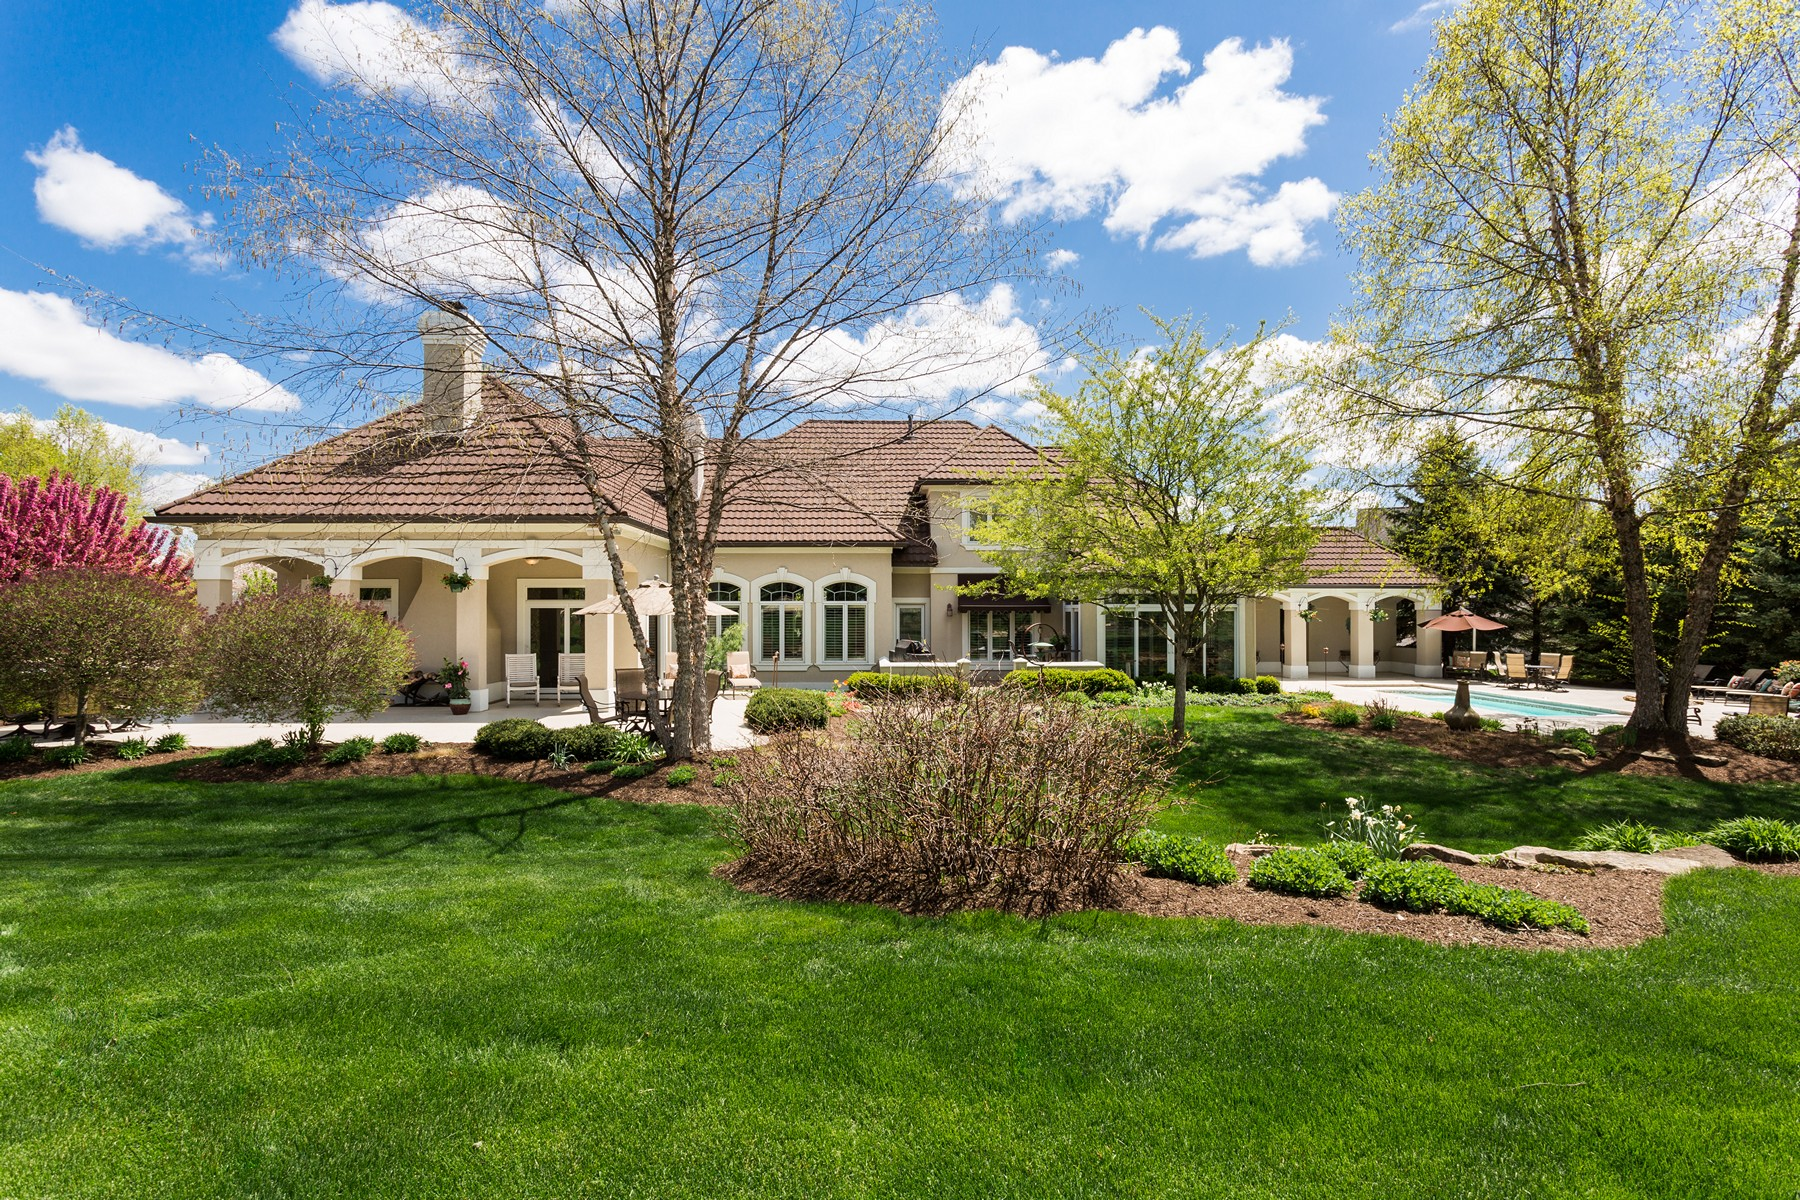 Single Family Home for Sale at Extraordinary Home 6521 Woodworth Court Indianapolis, Indiana 46237 United States